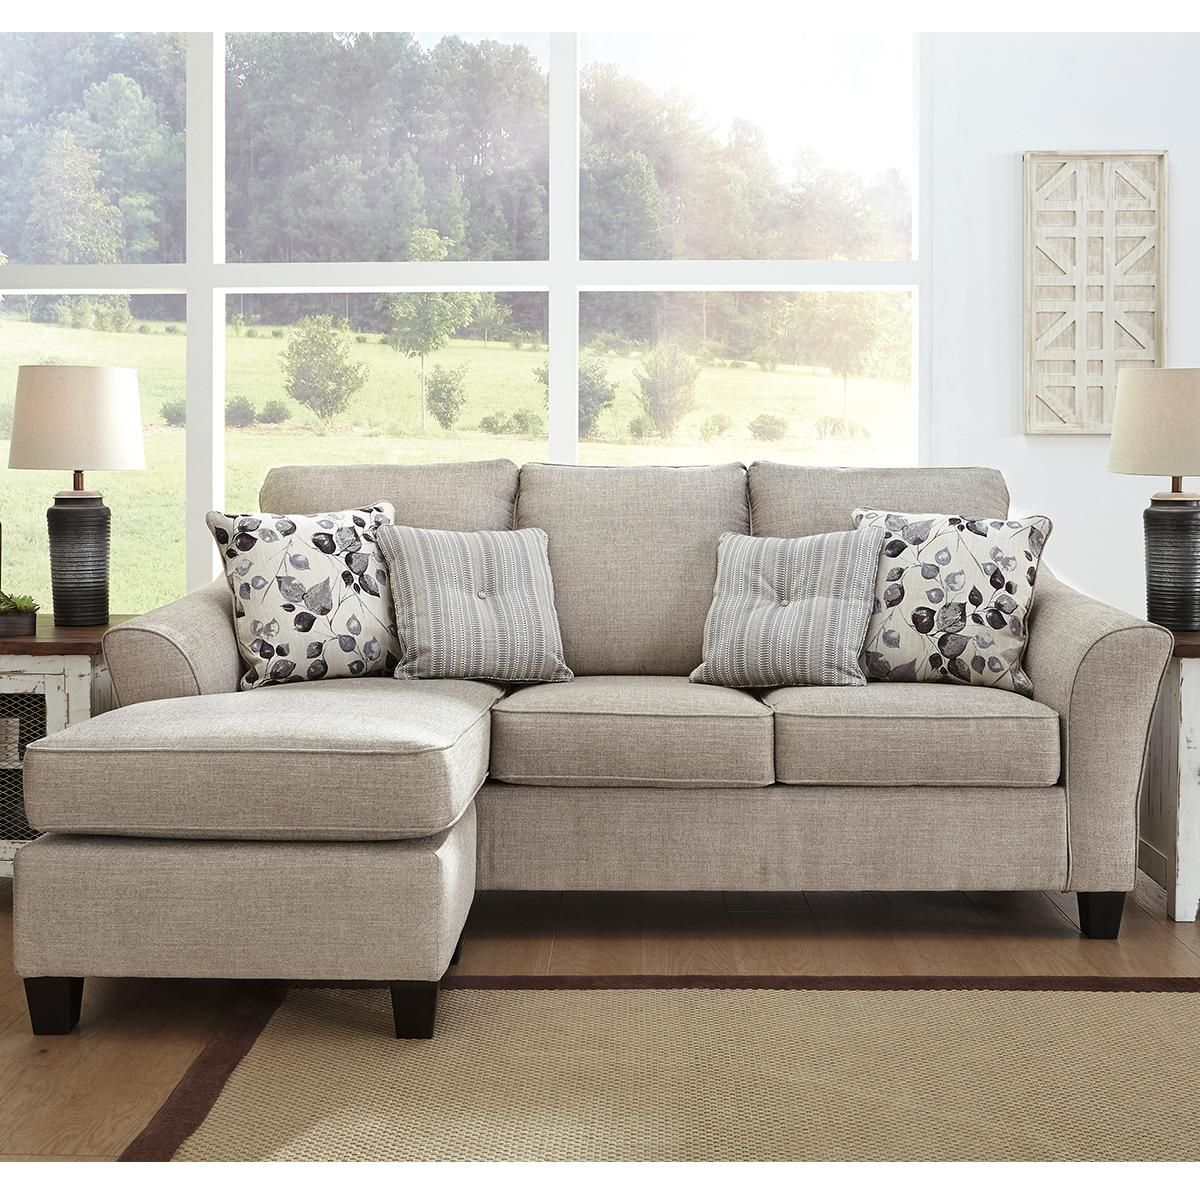 Signature Design By Ashley Abney Sofa With Chaise In Driftwood Nebraska Furniture Mart In 2020 Chaise Sofa Furniture Sofa